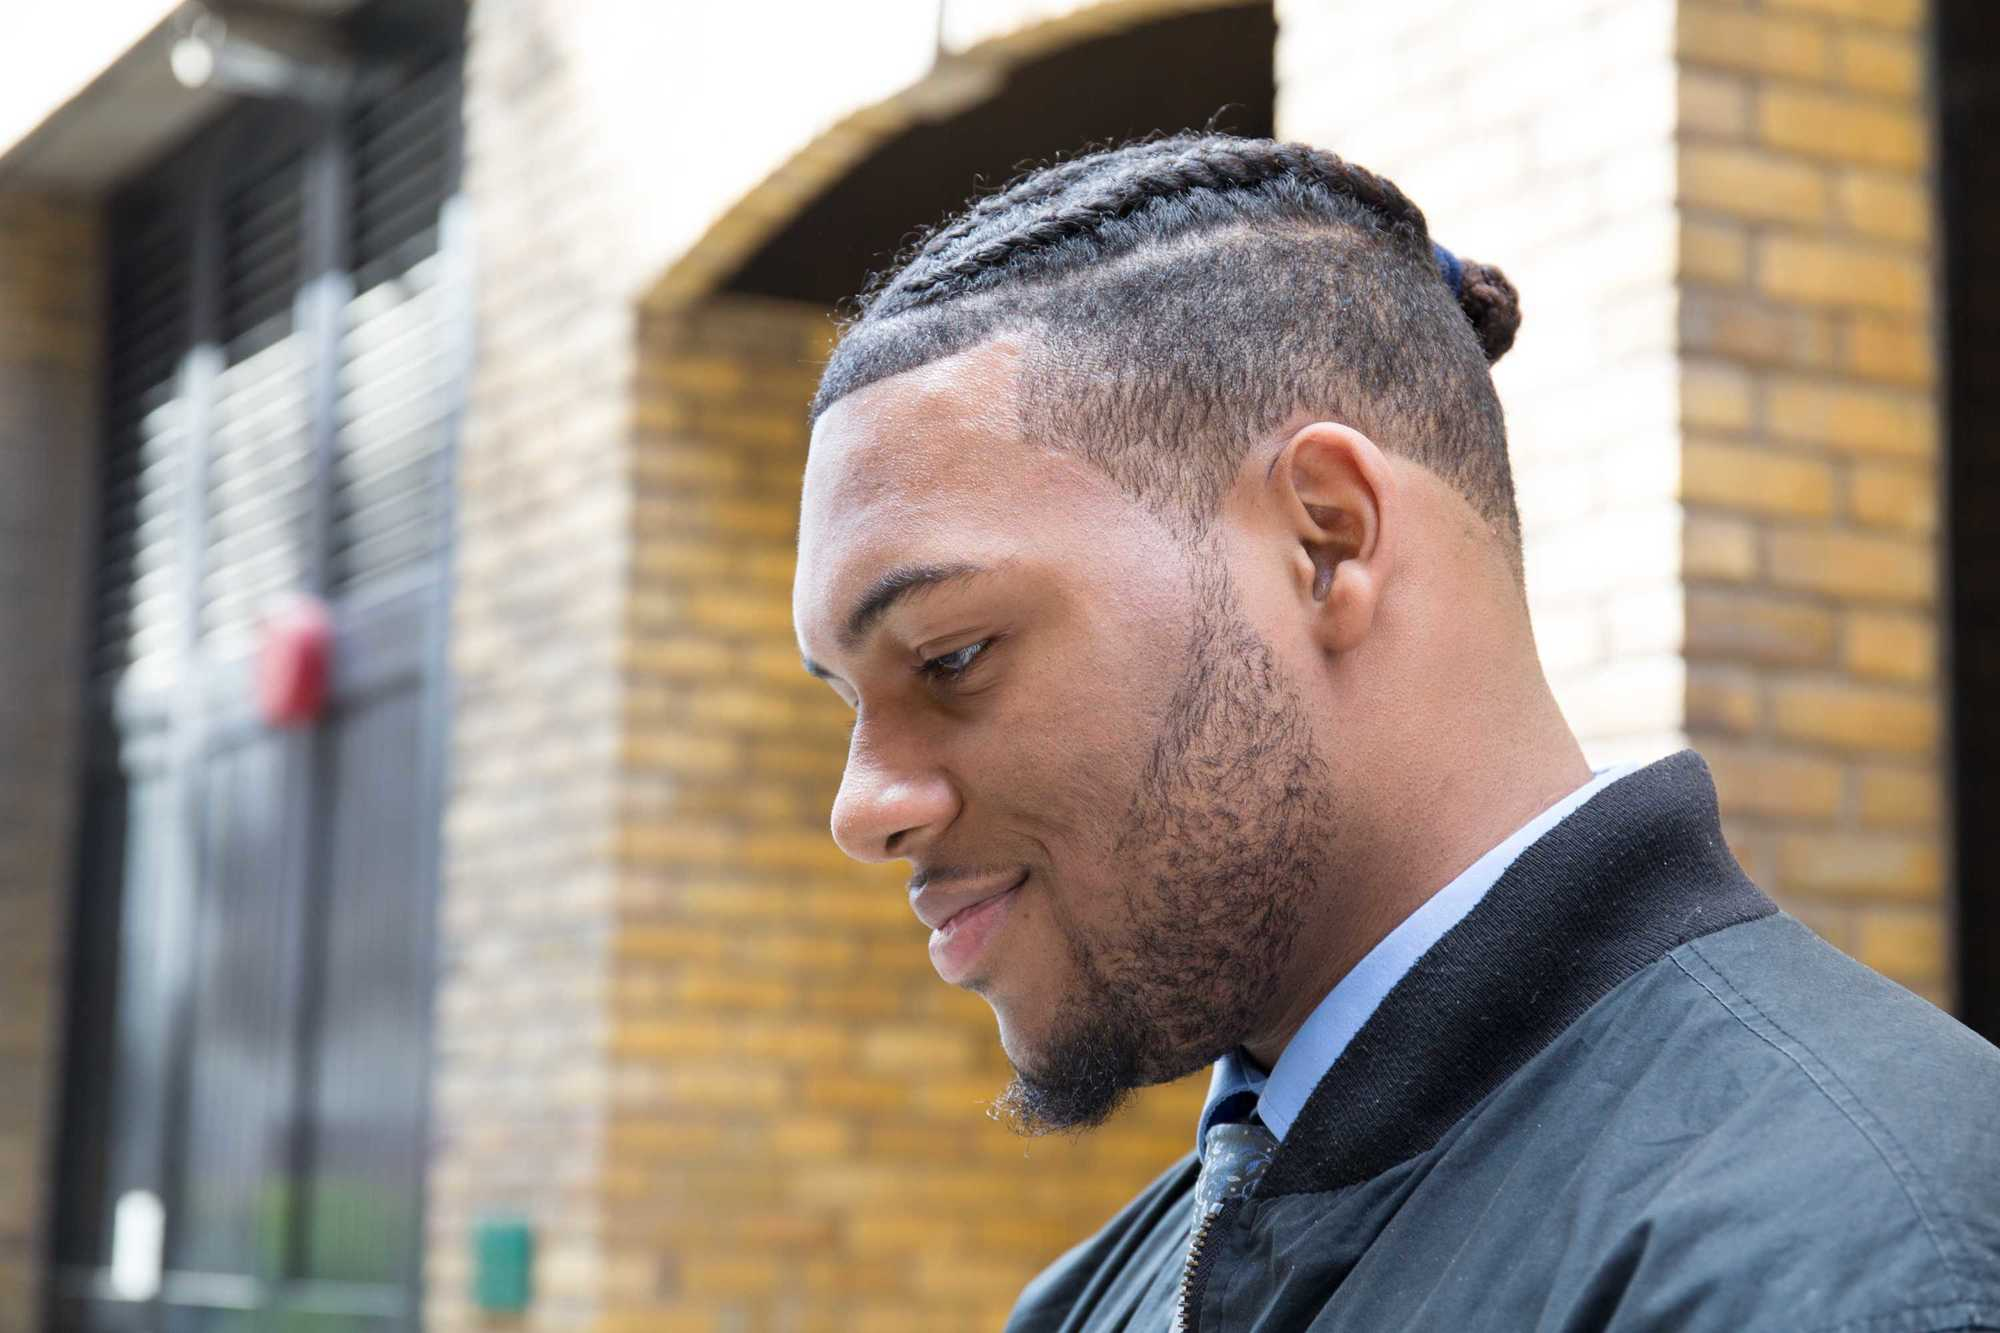 Man bun and beard: Close-up street style shot of a man with braided hair in a man bun with an undercut and face stubble